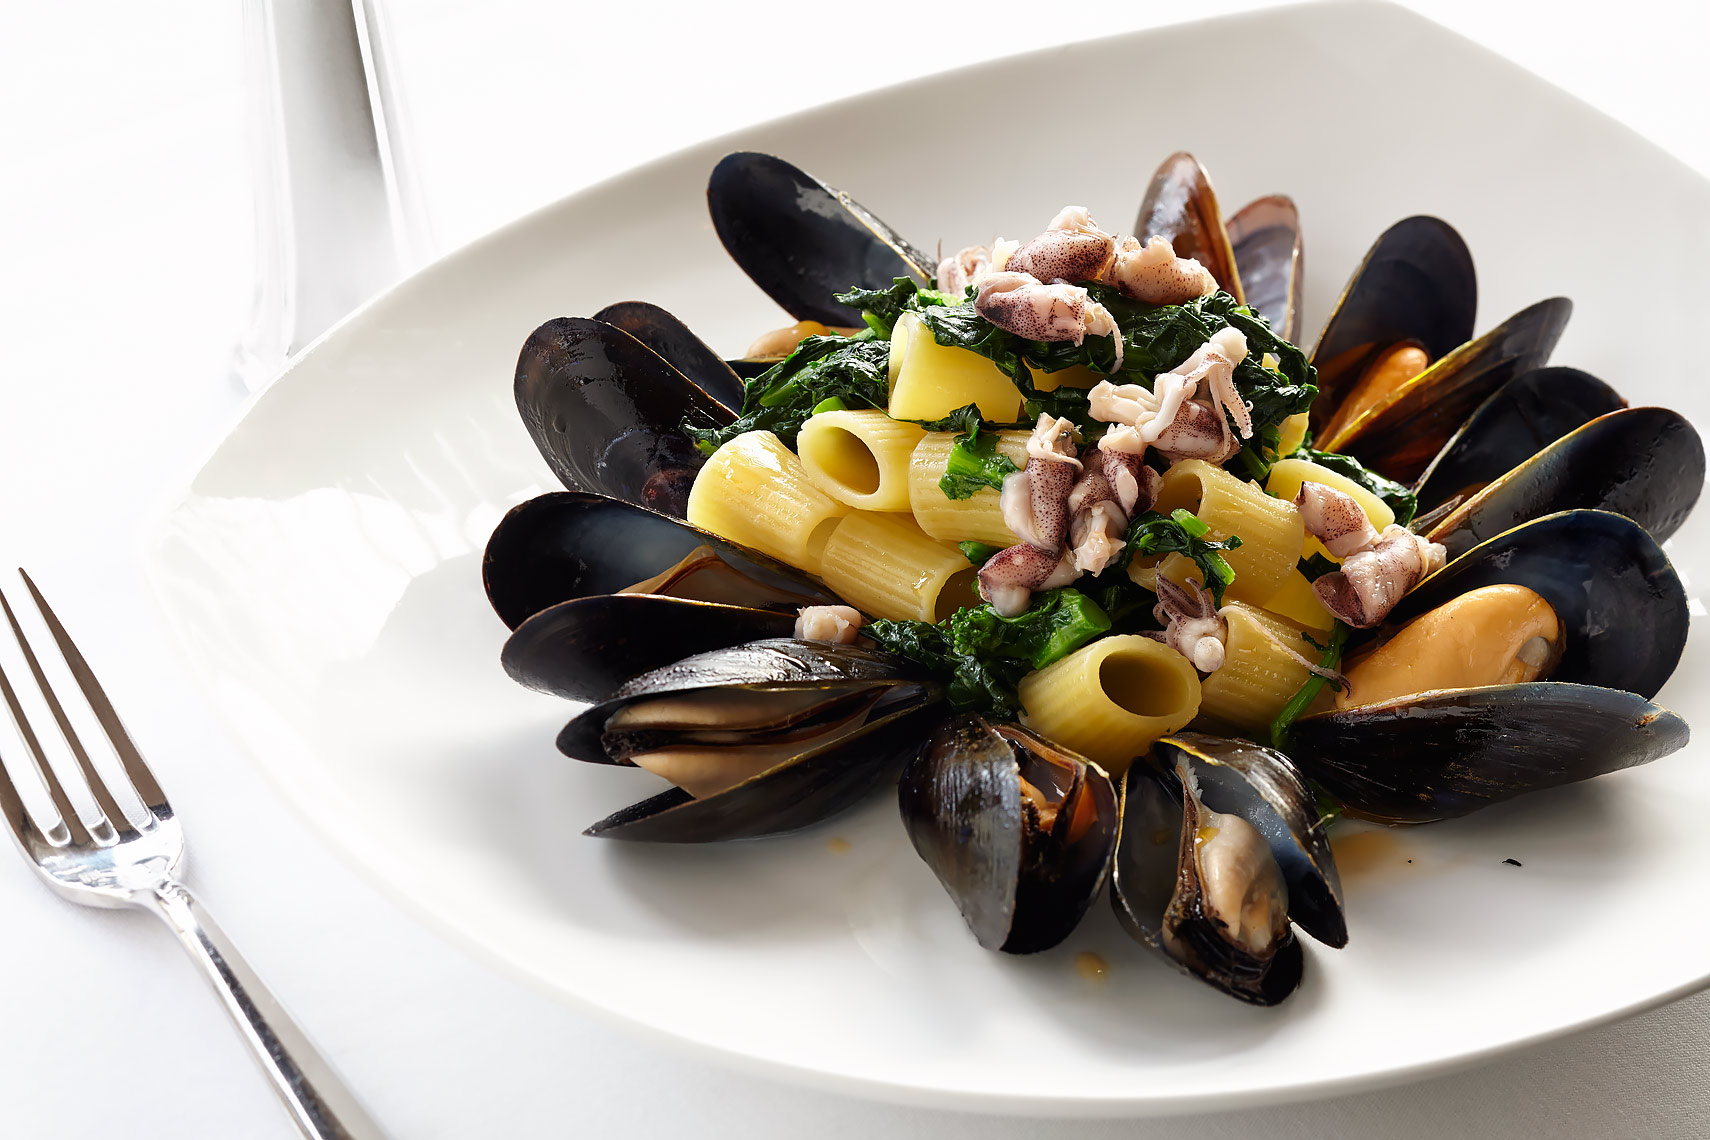 FOOD-DiningOut34-Cafe-Milano-Seafood-Pasta